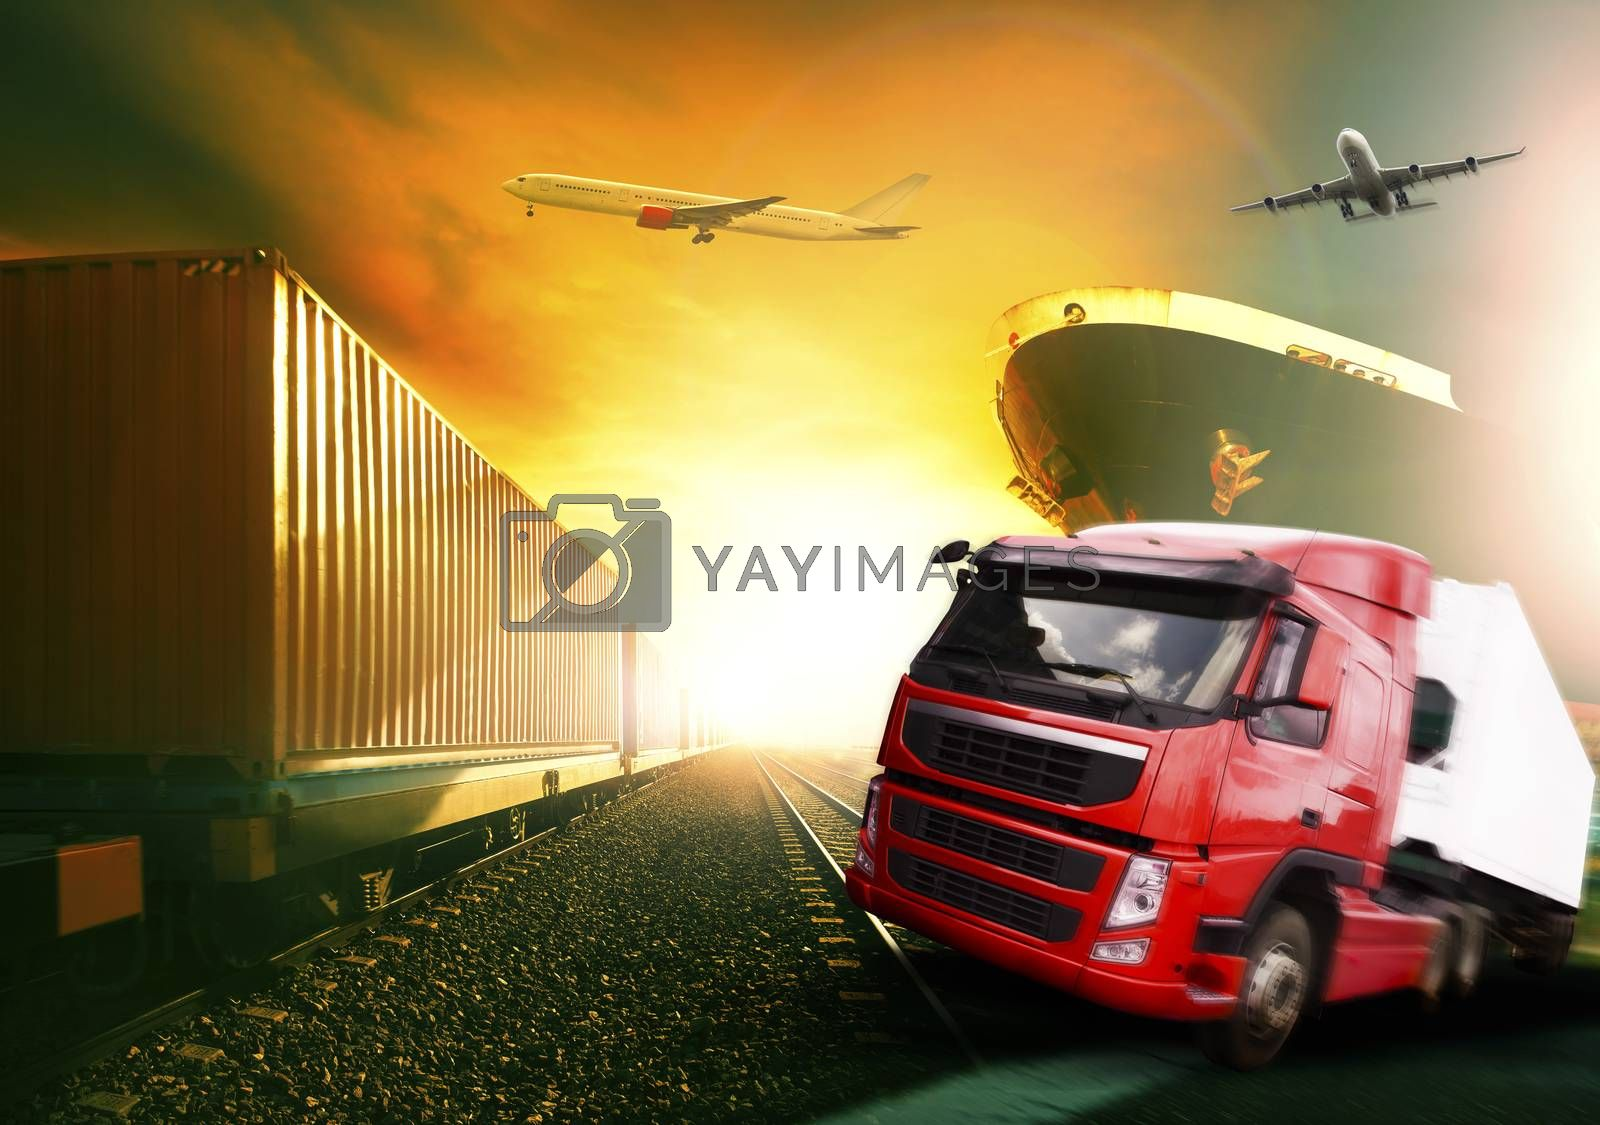 truck plane trains and ship in transportation industrial logistic business